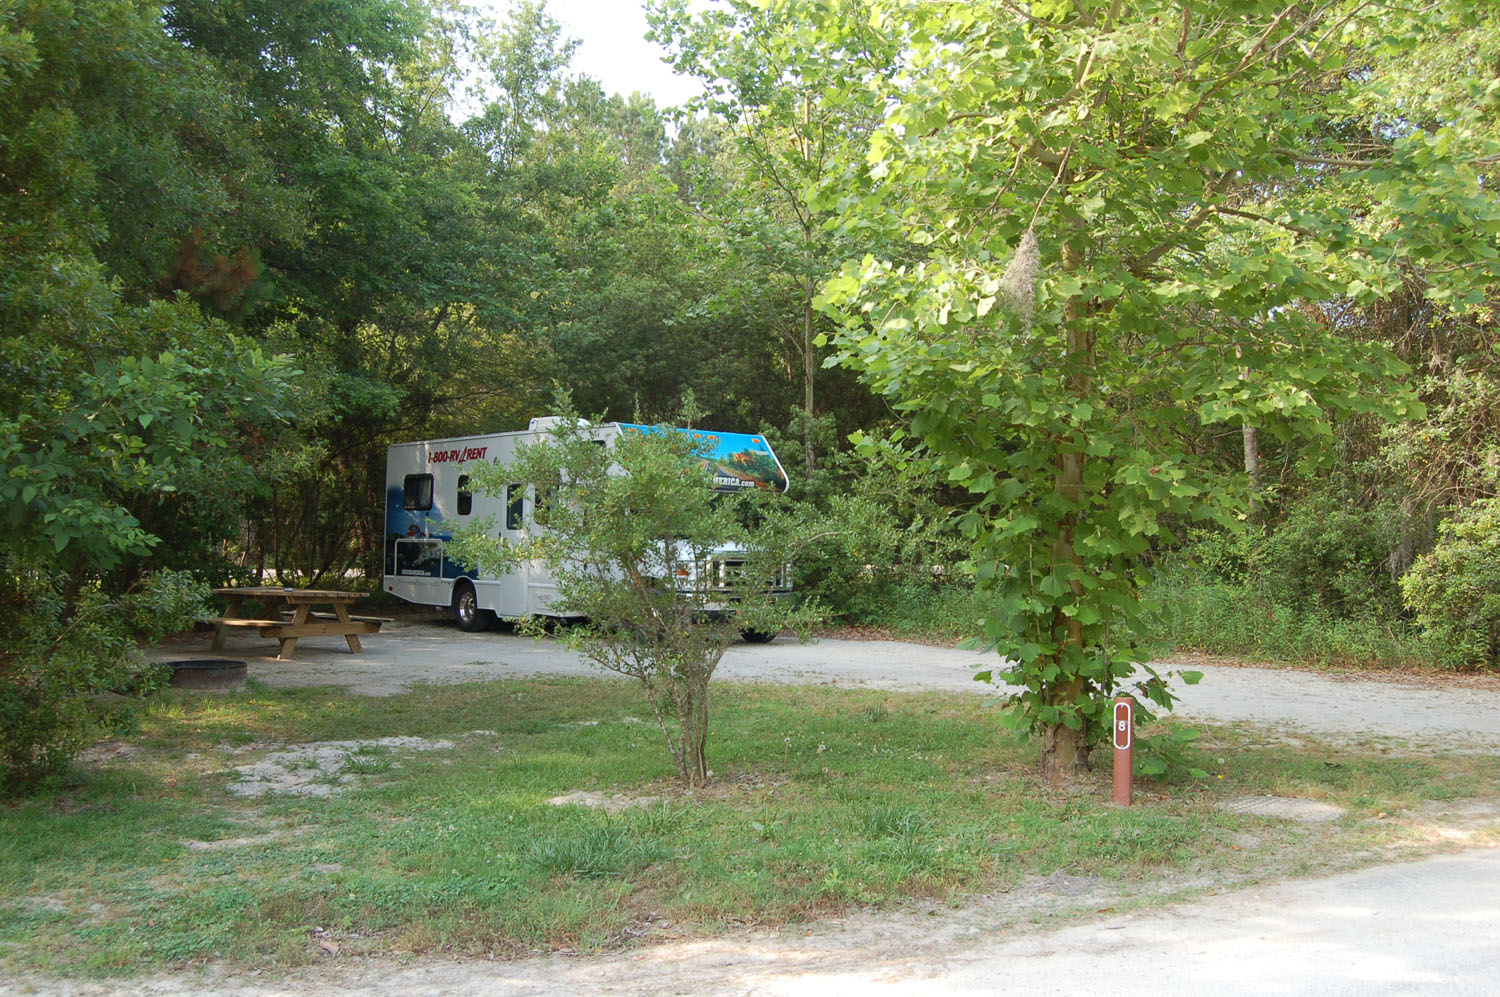 Image of campsite #8 at James Island County Park